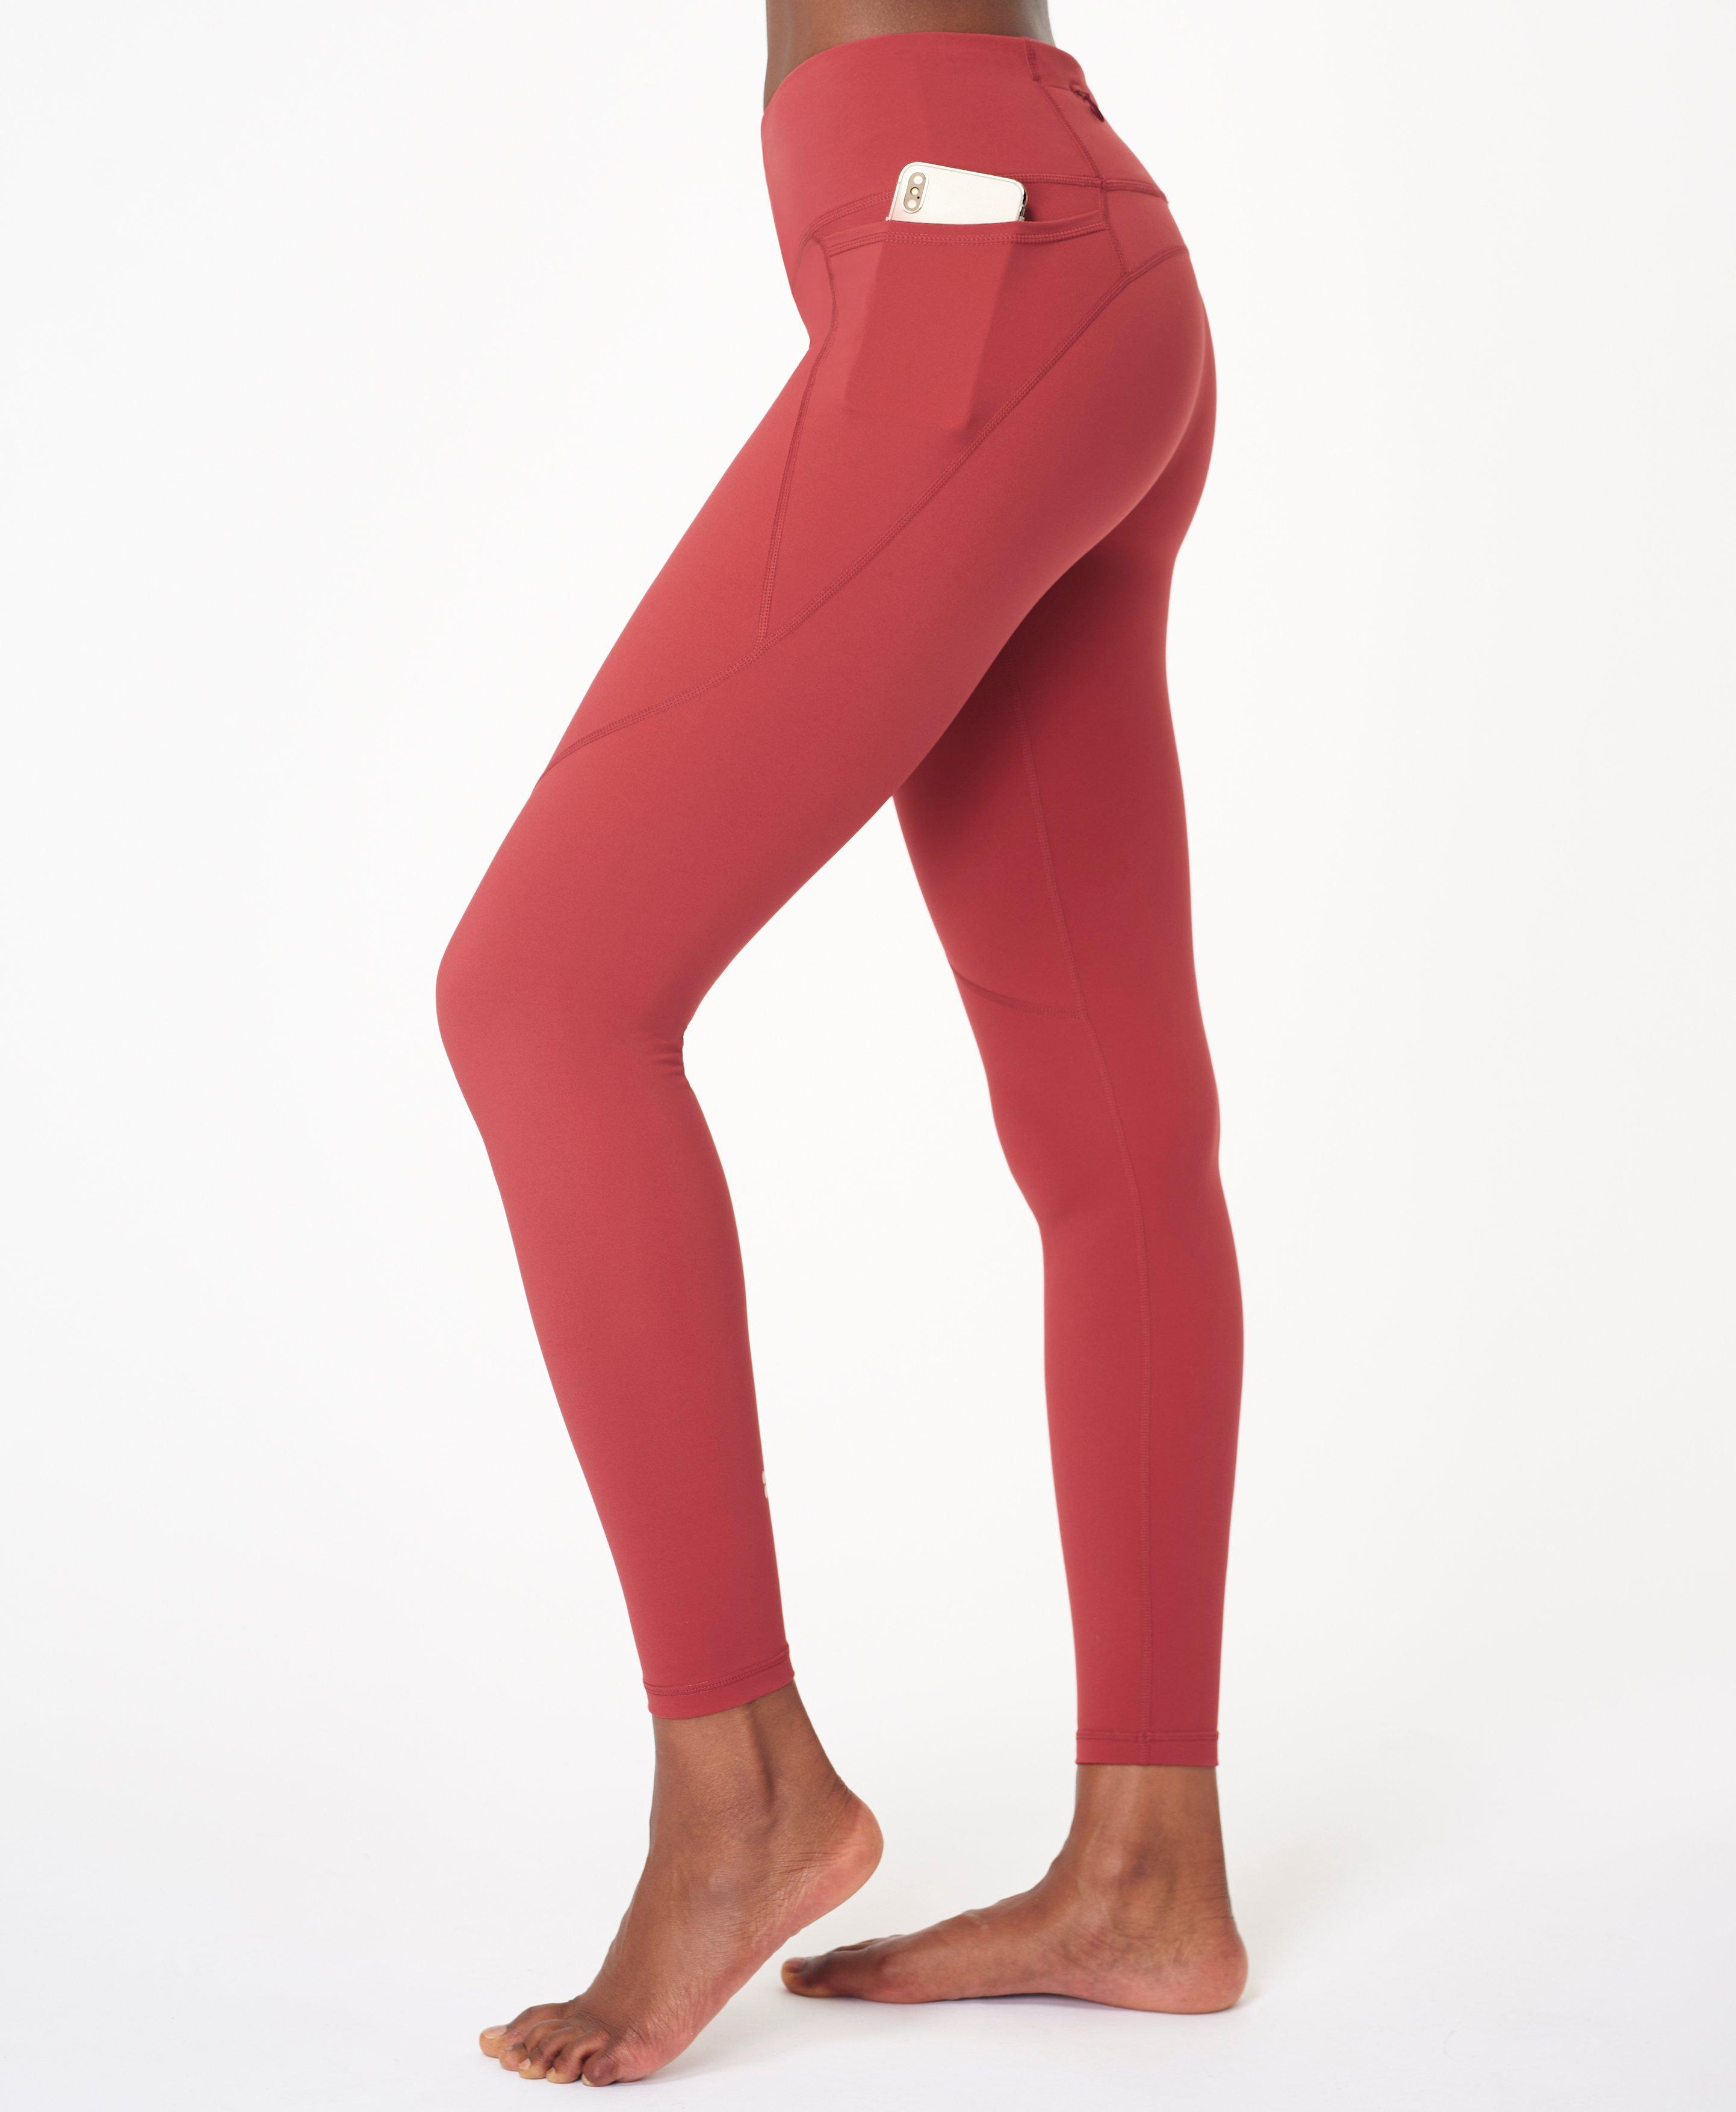 In our full length, our bestselling Power Leggings are engineered to sculpt, stretch and support. Made to perform for every single sport with a side pocket and back zip pocket, high adjustable waistband and compression. Even better, they\\\'re bum-sculpting too.